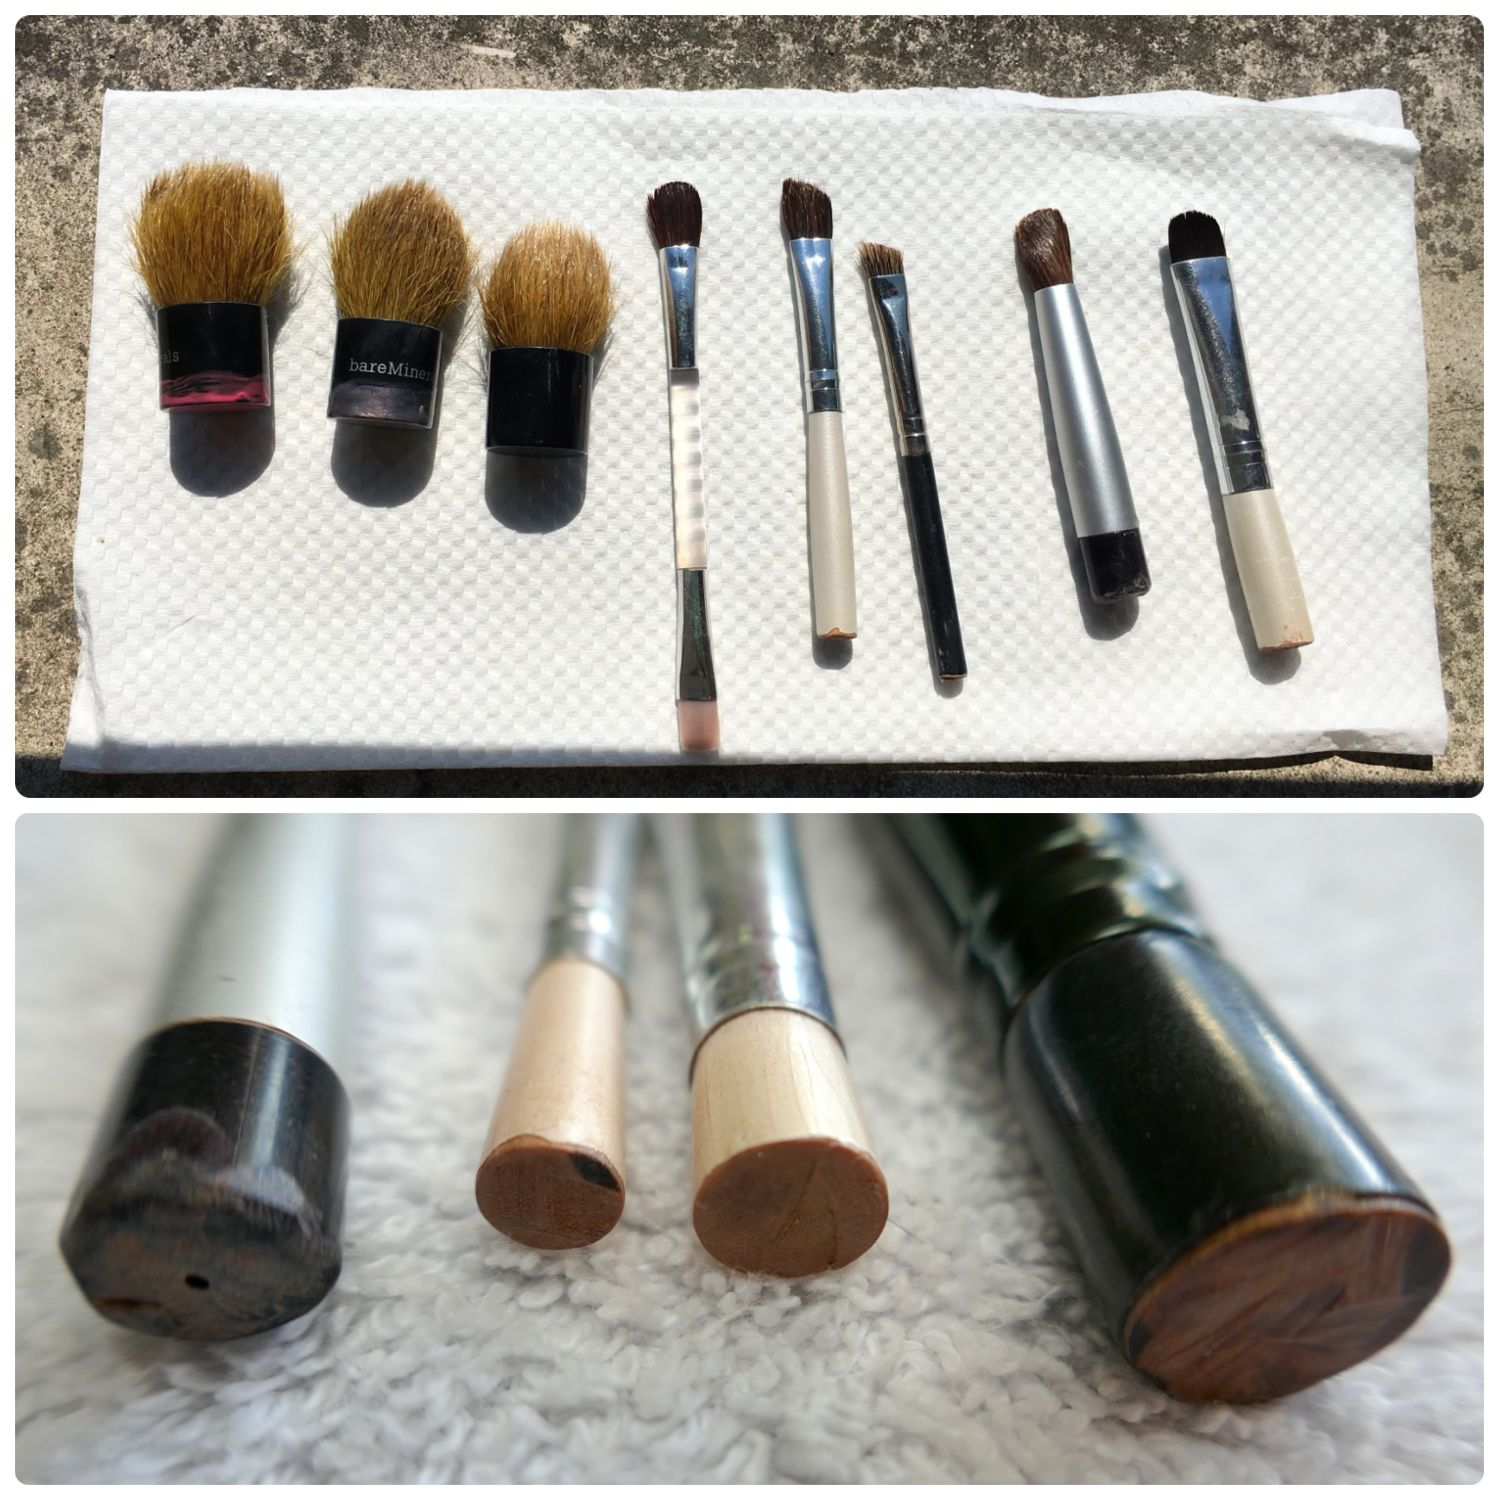 Top: My DIY travel makeup brush set is my favorite full sized brushes with a modified (cut) handle! This is the entire set, minus my foundation brush. Bottom: The ends of my travel makeup brush after cutting and sanding.